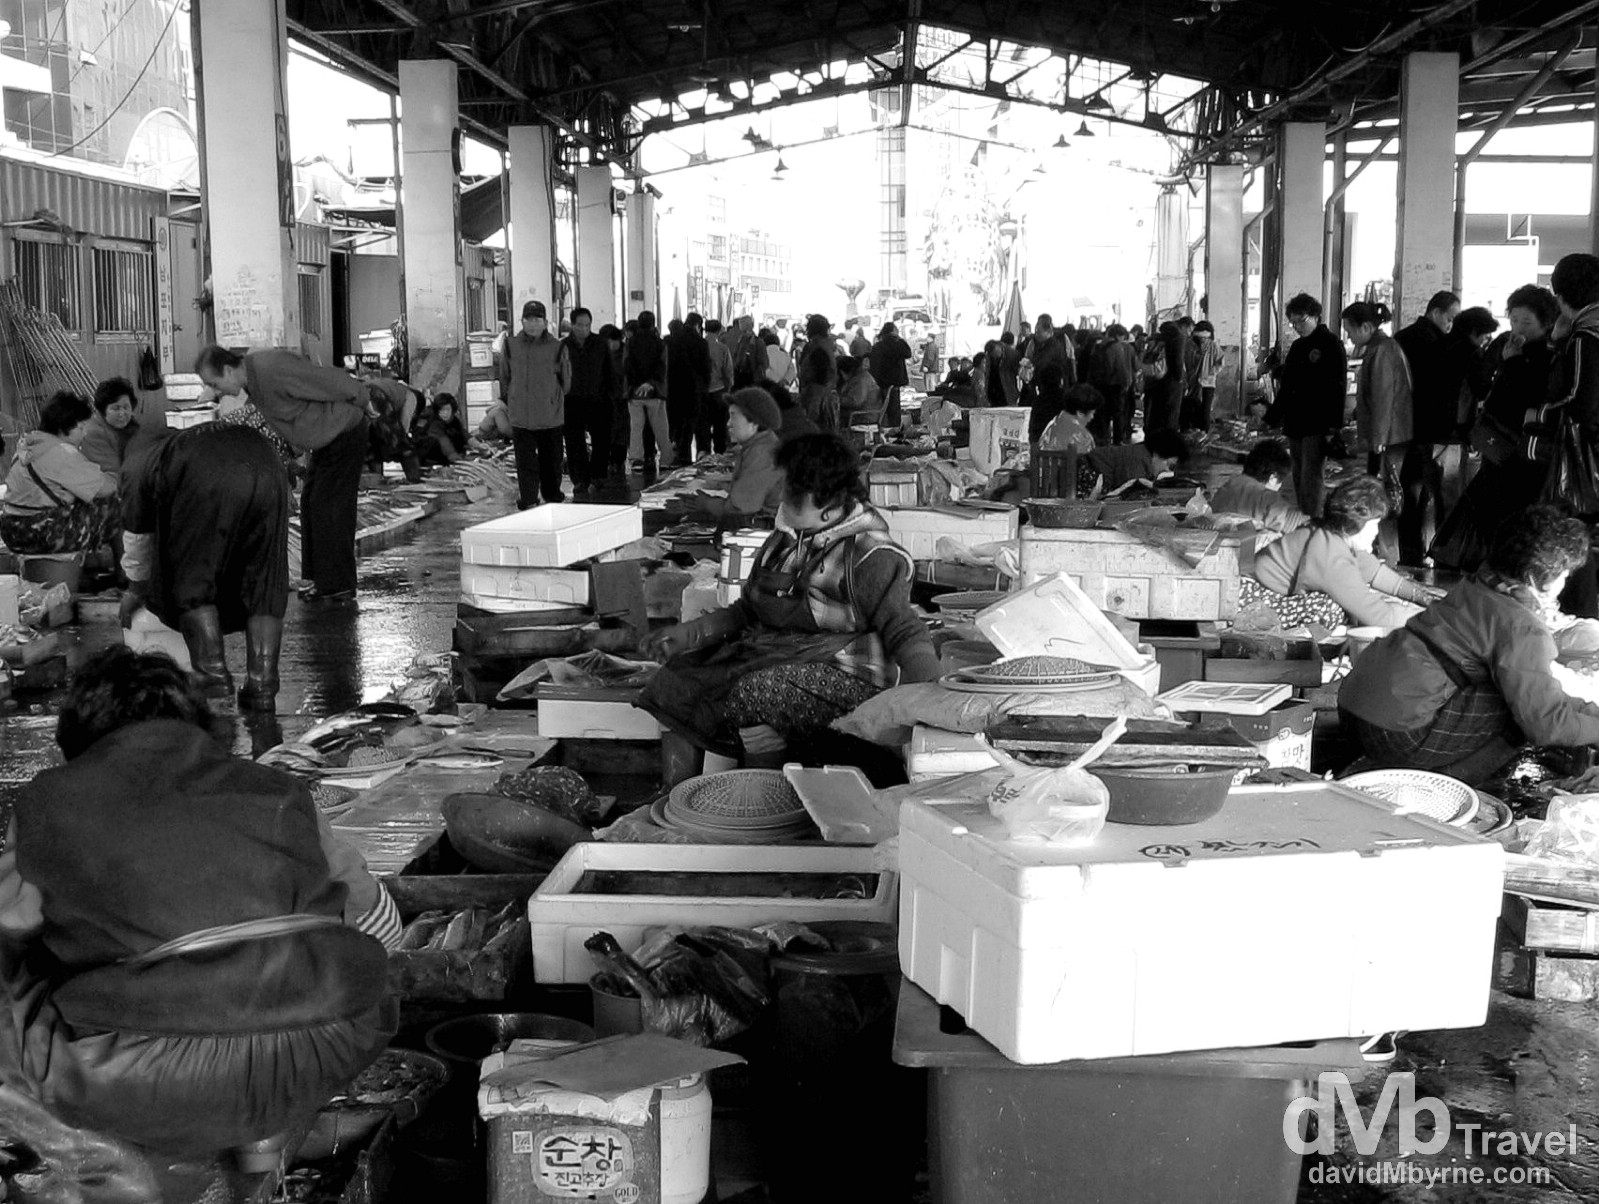 Jagalchi Fish Market, Busan, South Korea. November 23rd, 2007.